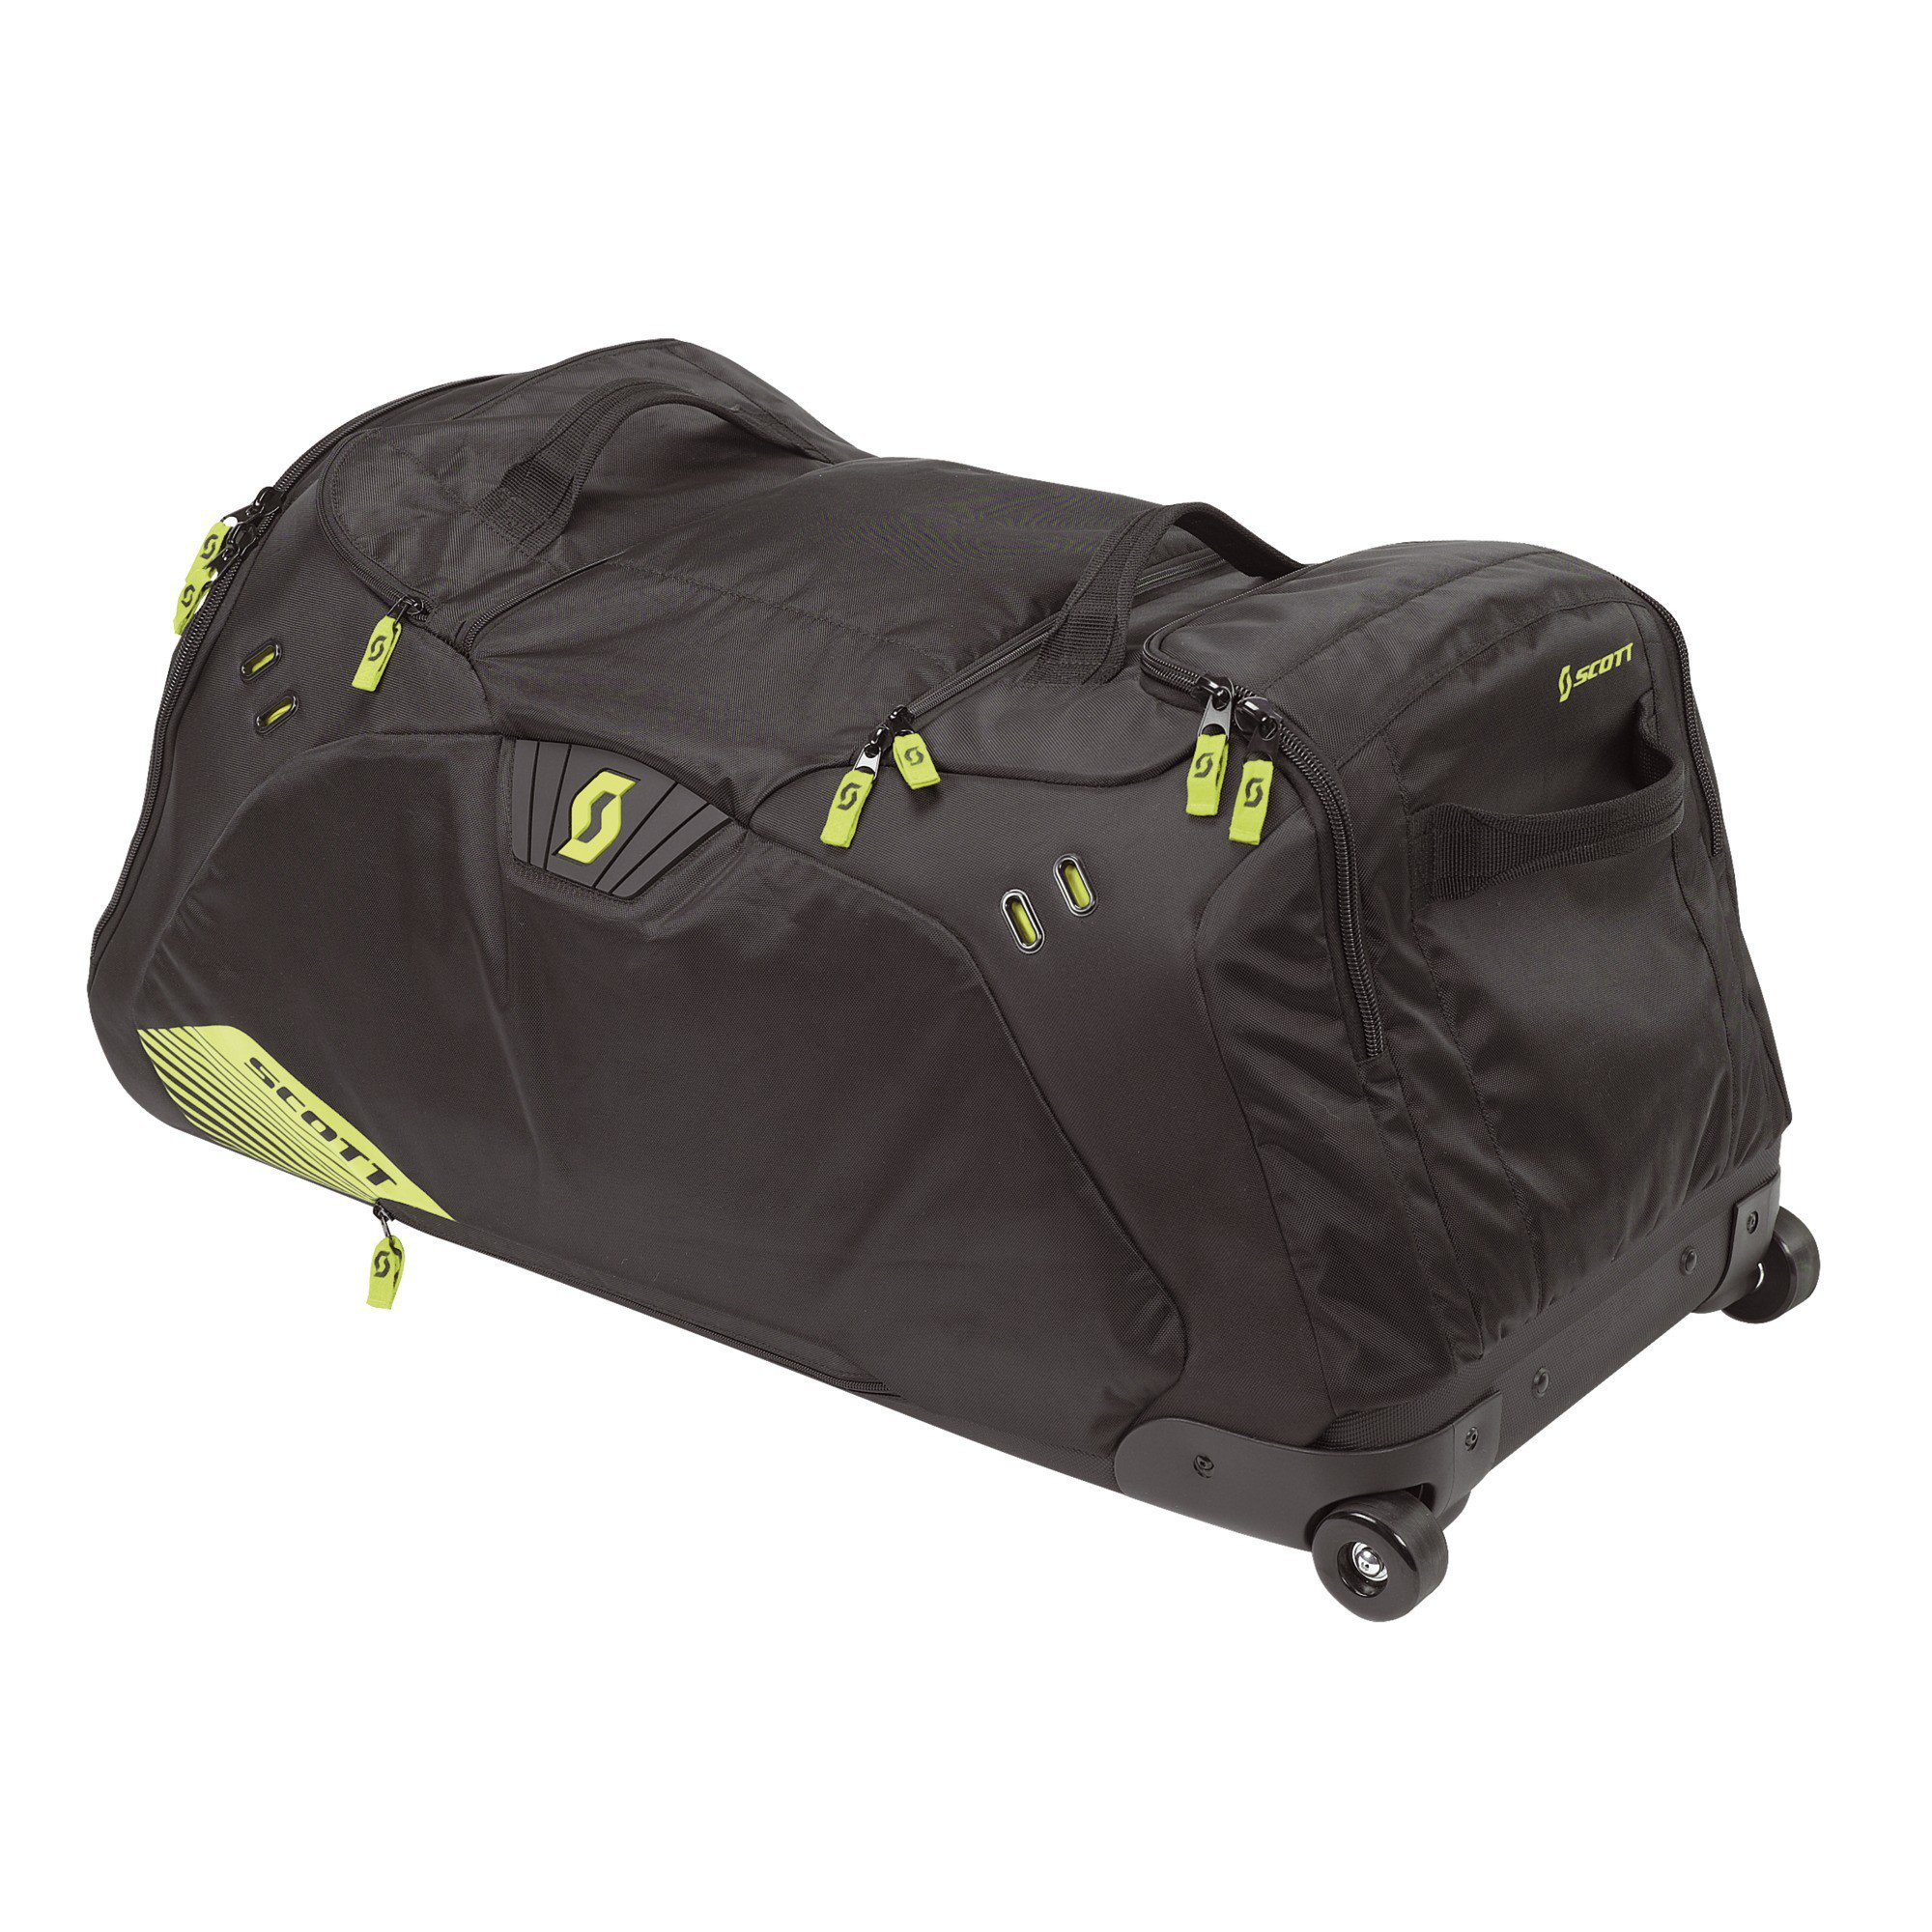 Taška Gear Duffle Scott